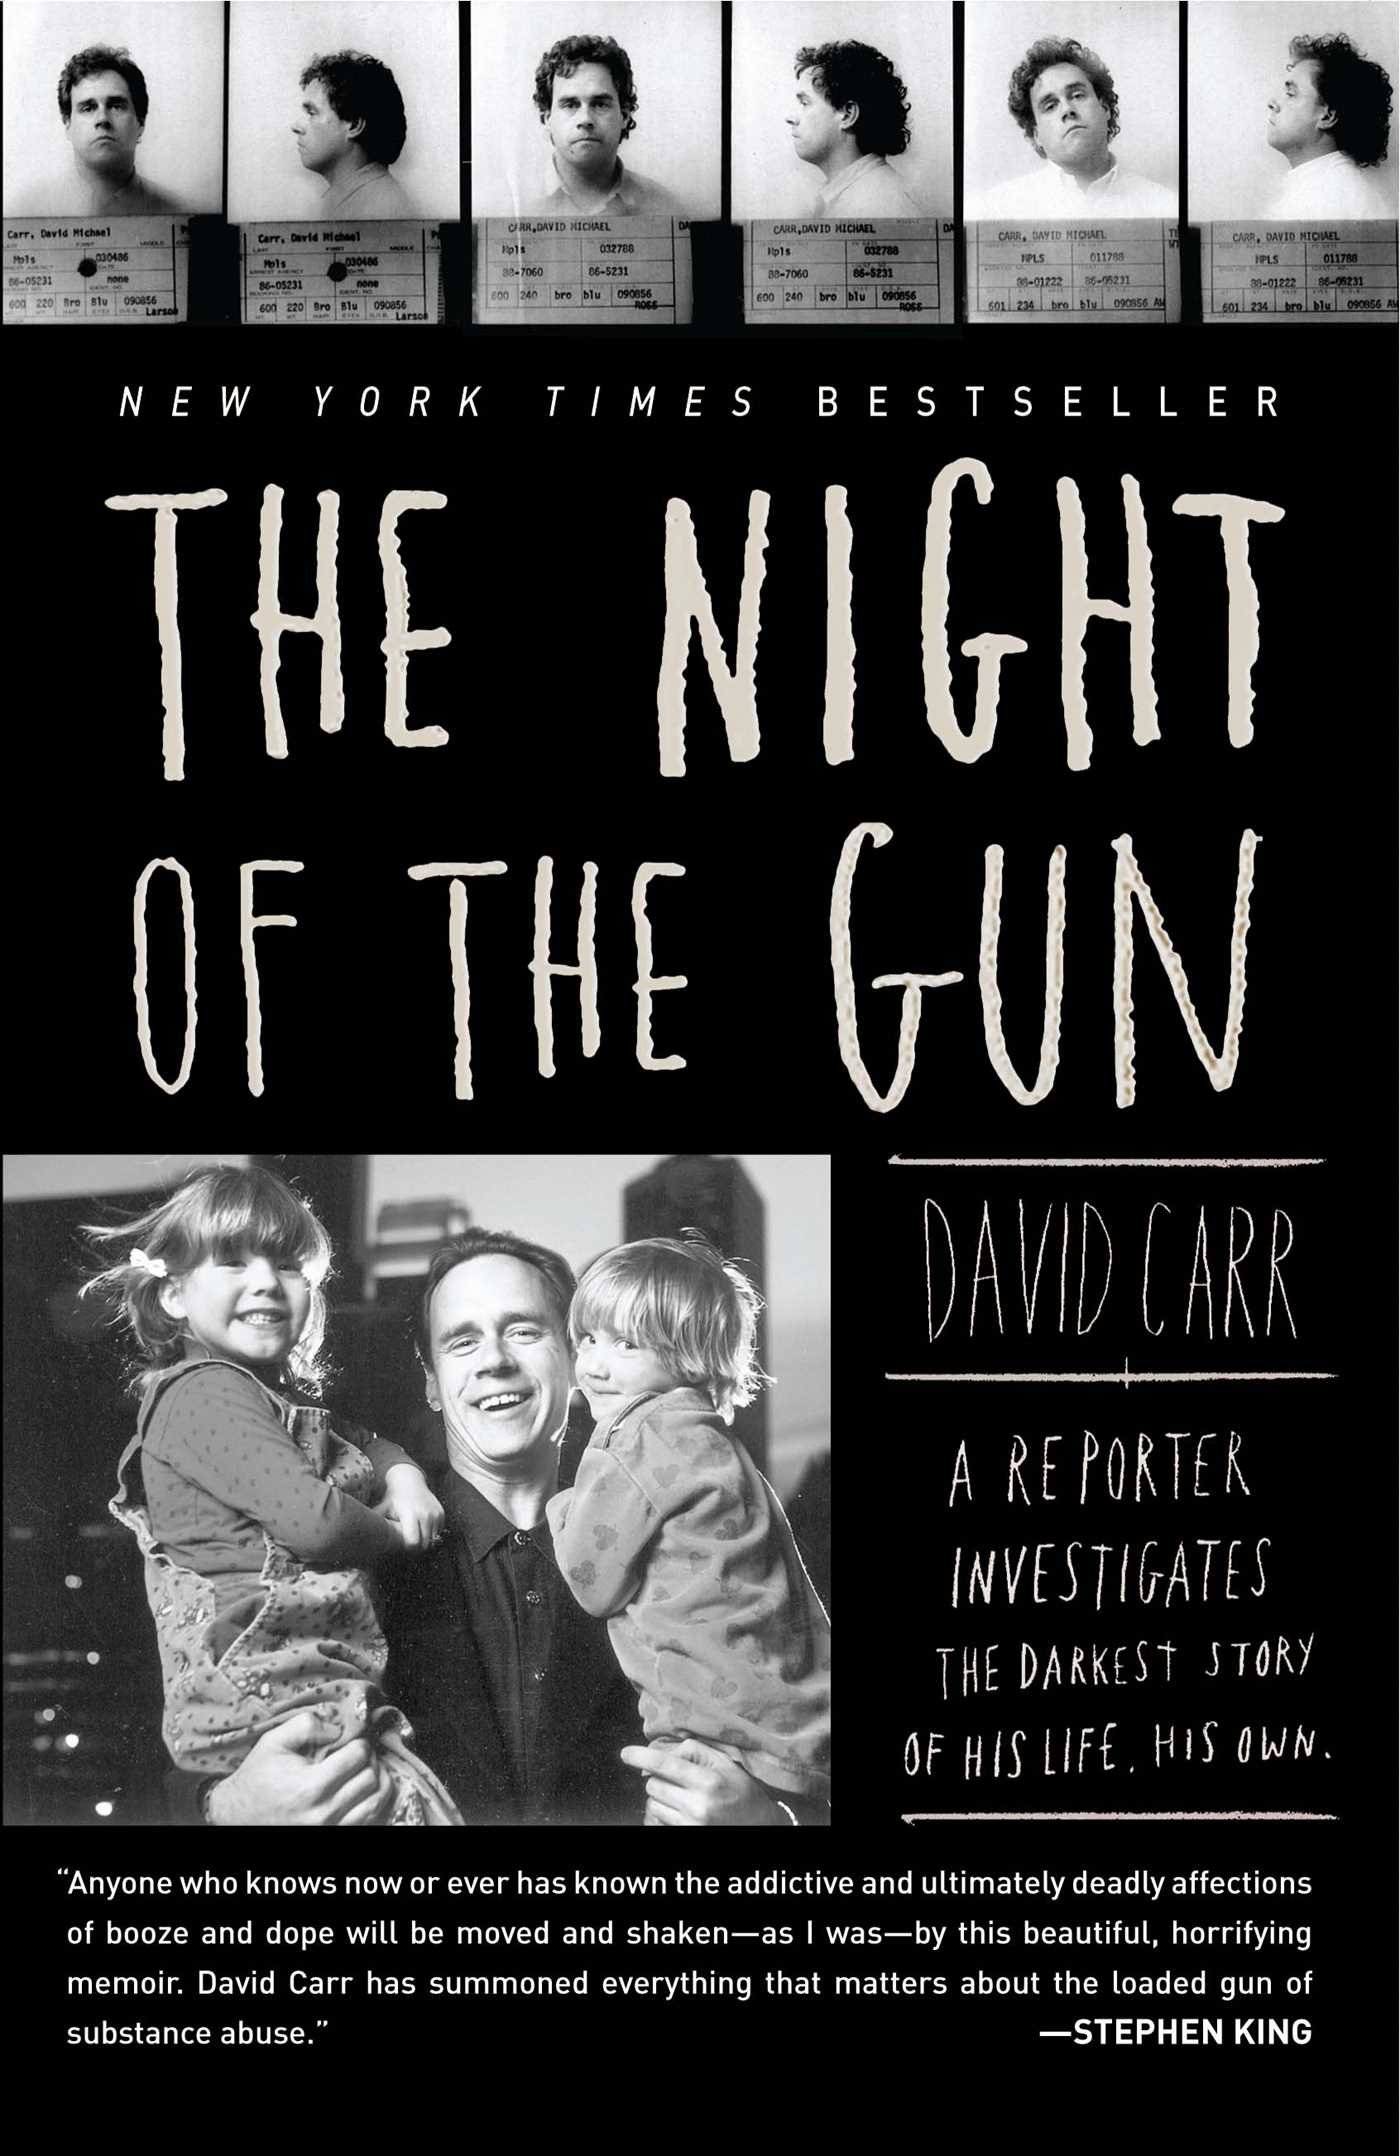 The Night of the Gun: A Reporter Investigates the Darkest Story of His Life